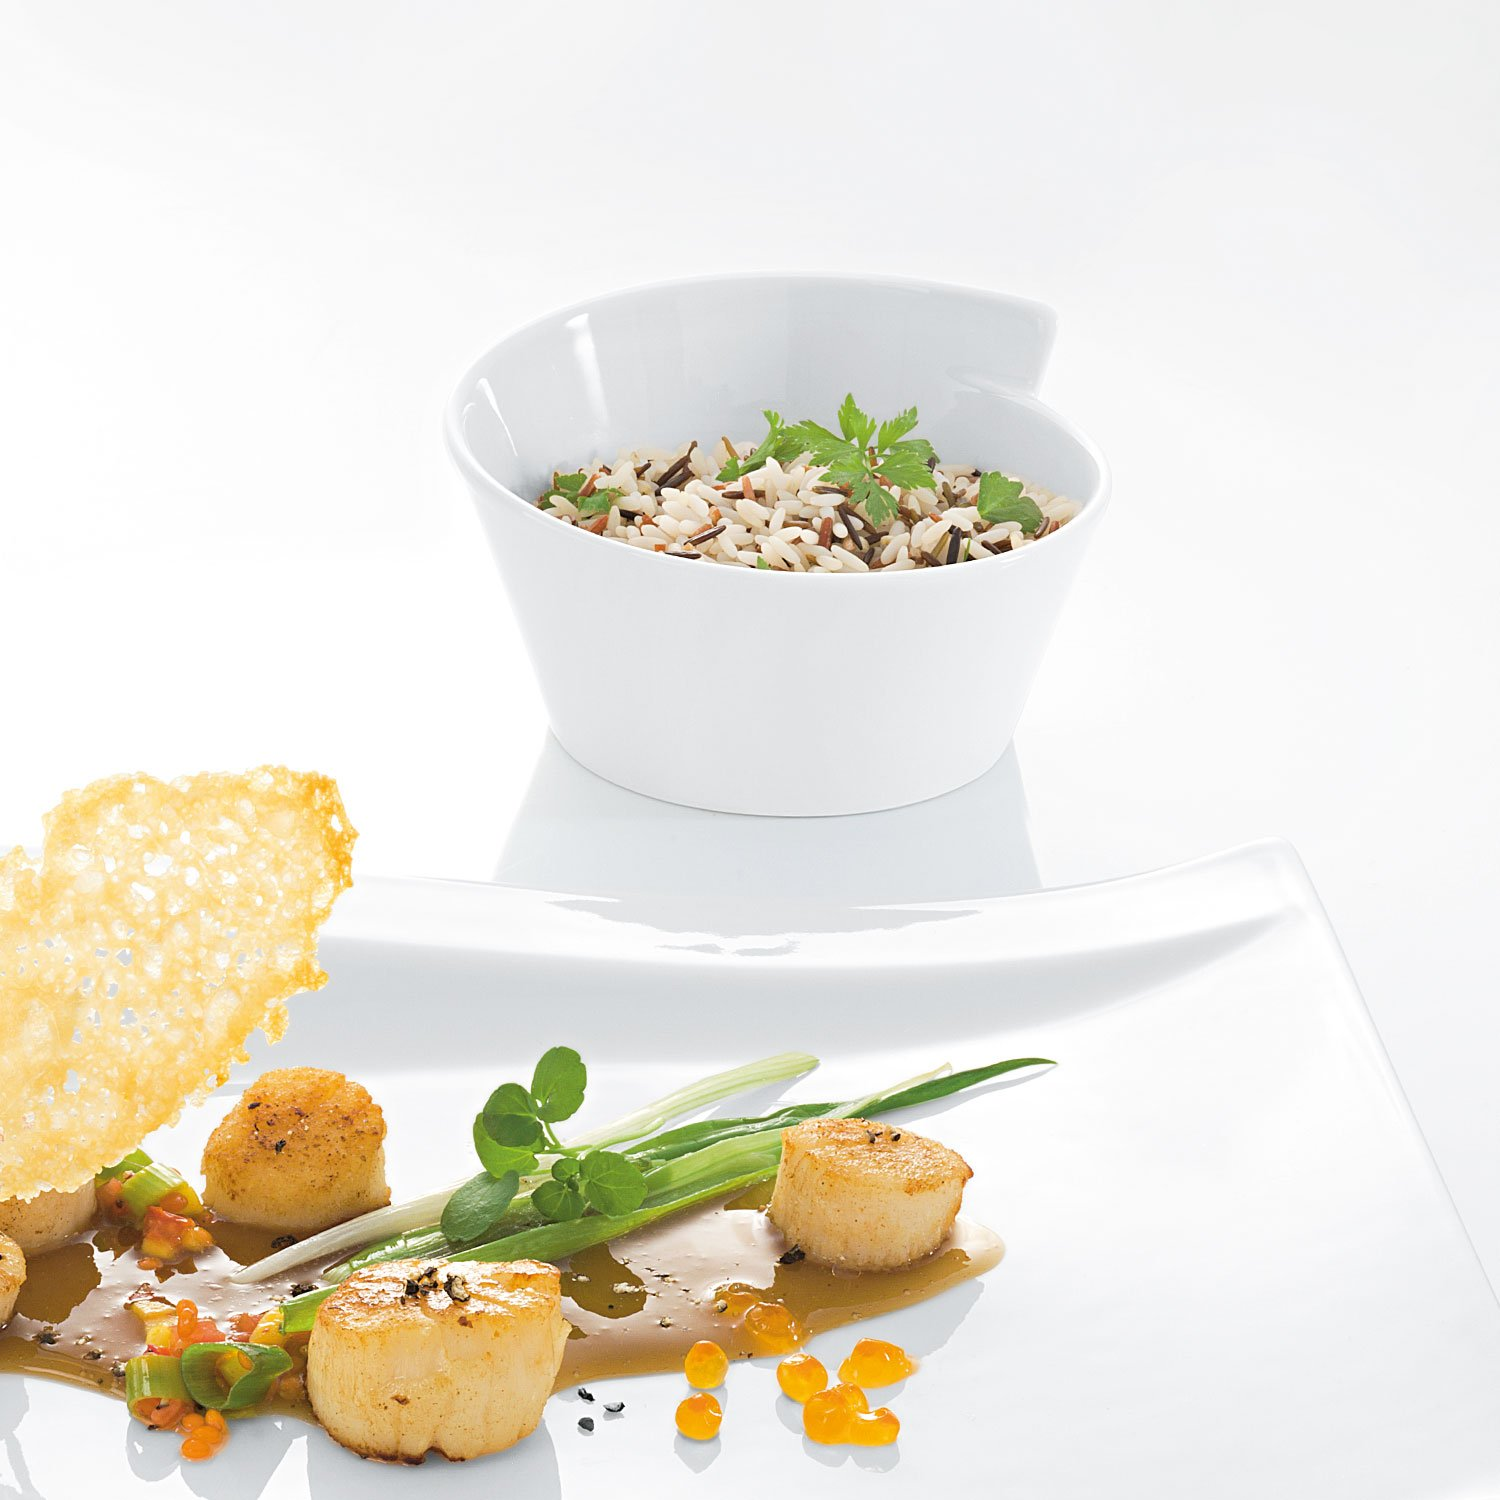 Villeroy & Boch New Wave Small Rice Bowl(s) by Villeroy & Boch (Image #4)